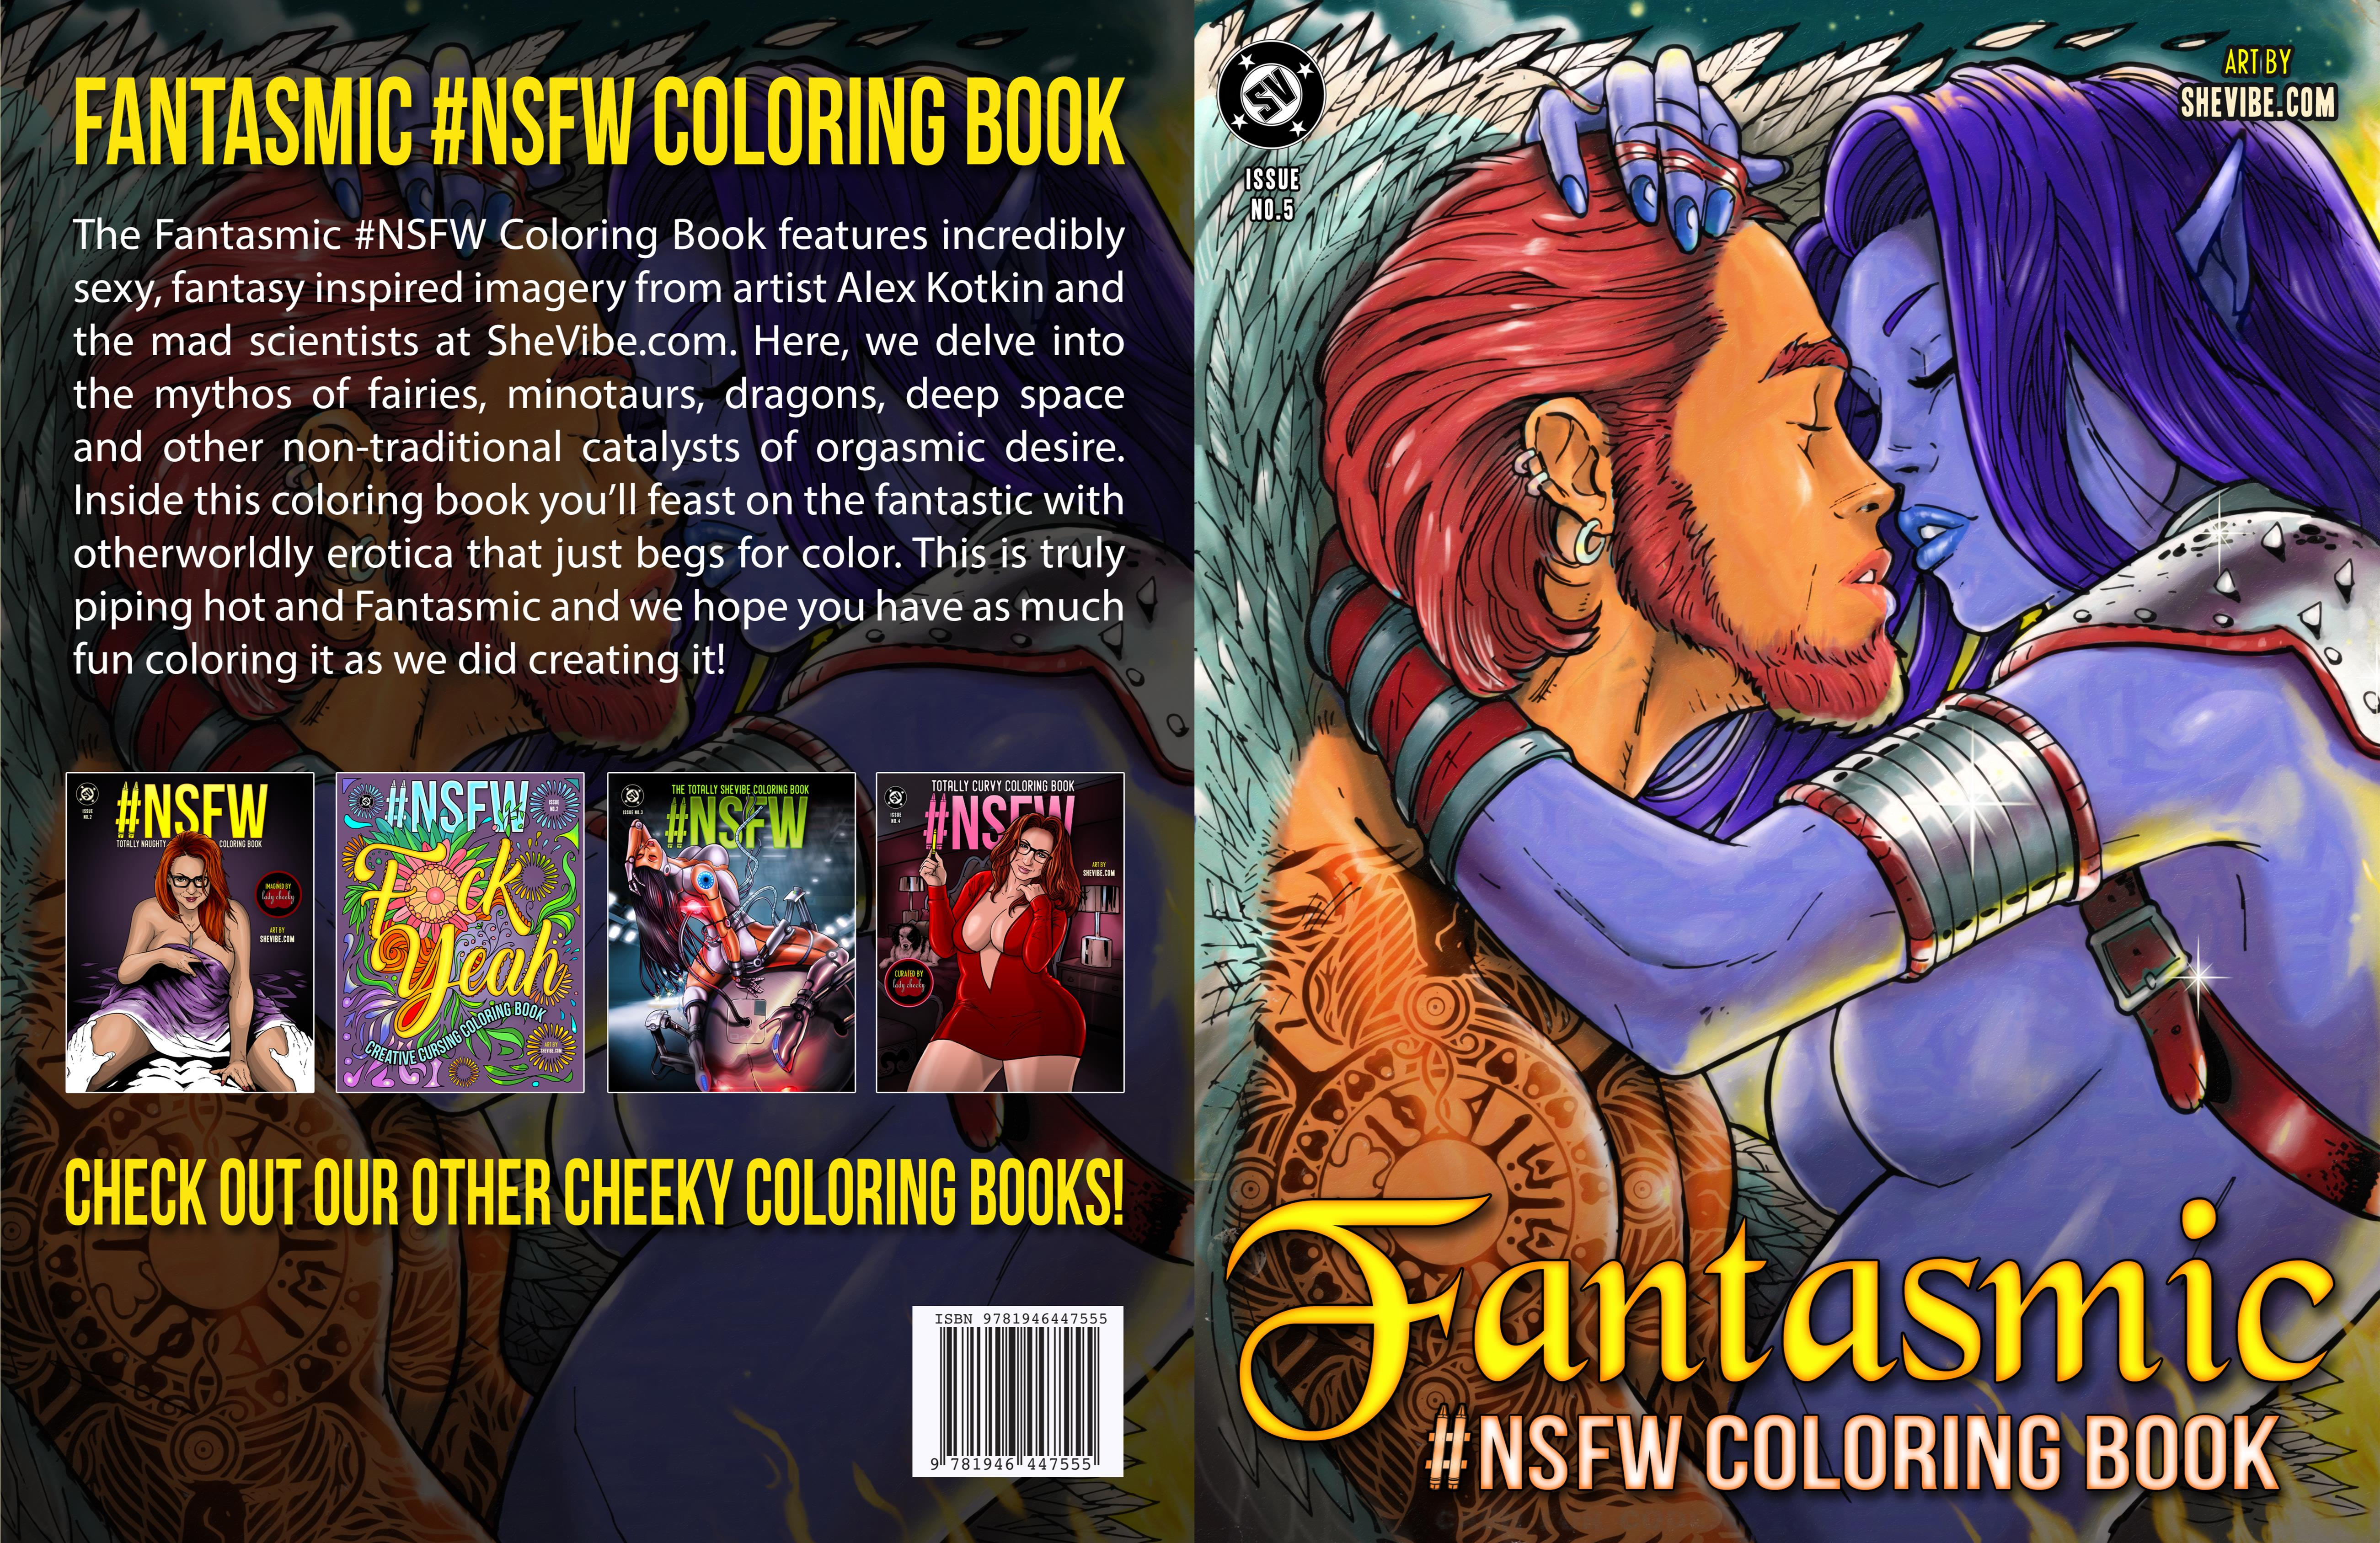 Fantasmic #NSFW Coloring Book (Issue 5) cover image